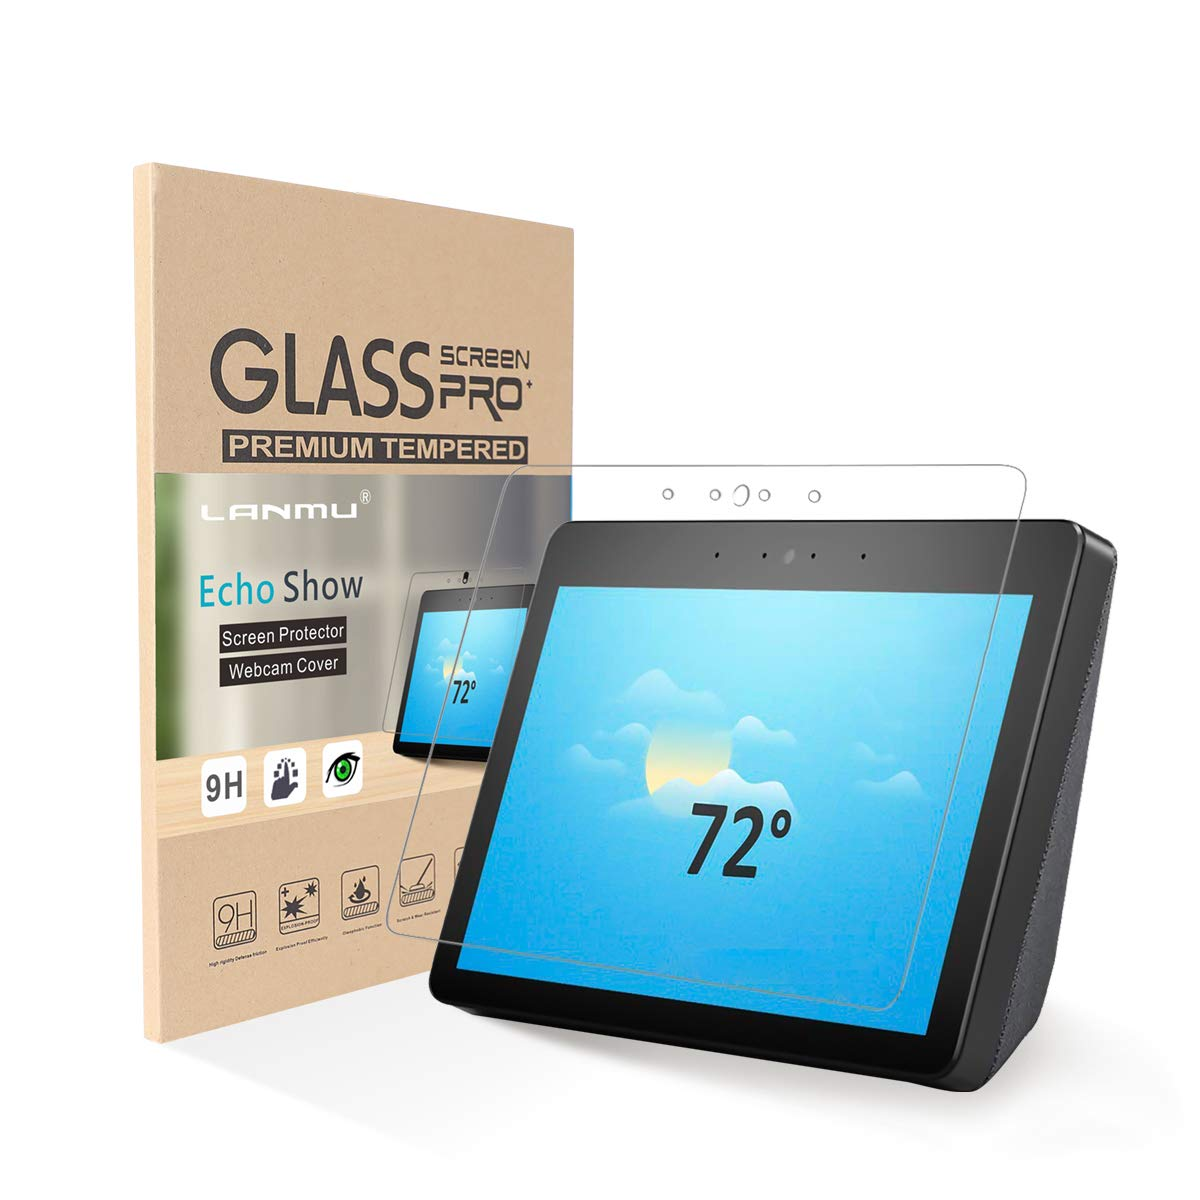 LANMU Echo Show Screen Protector,Tempered Glass Screen Protectors for Echo Show ,Echo Show Accessories 2nd Gen 2 Pack